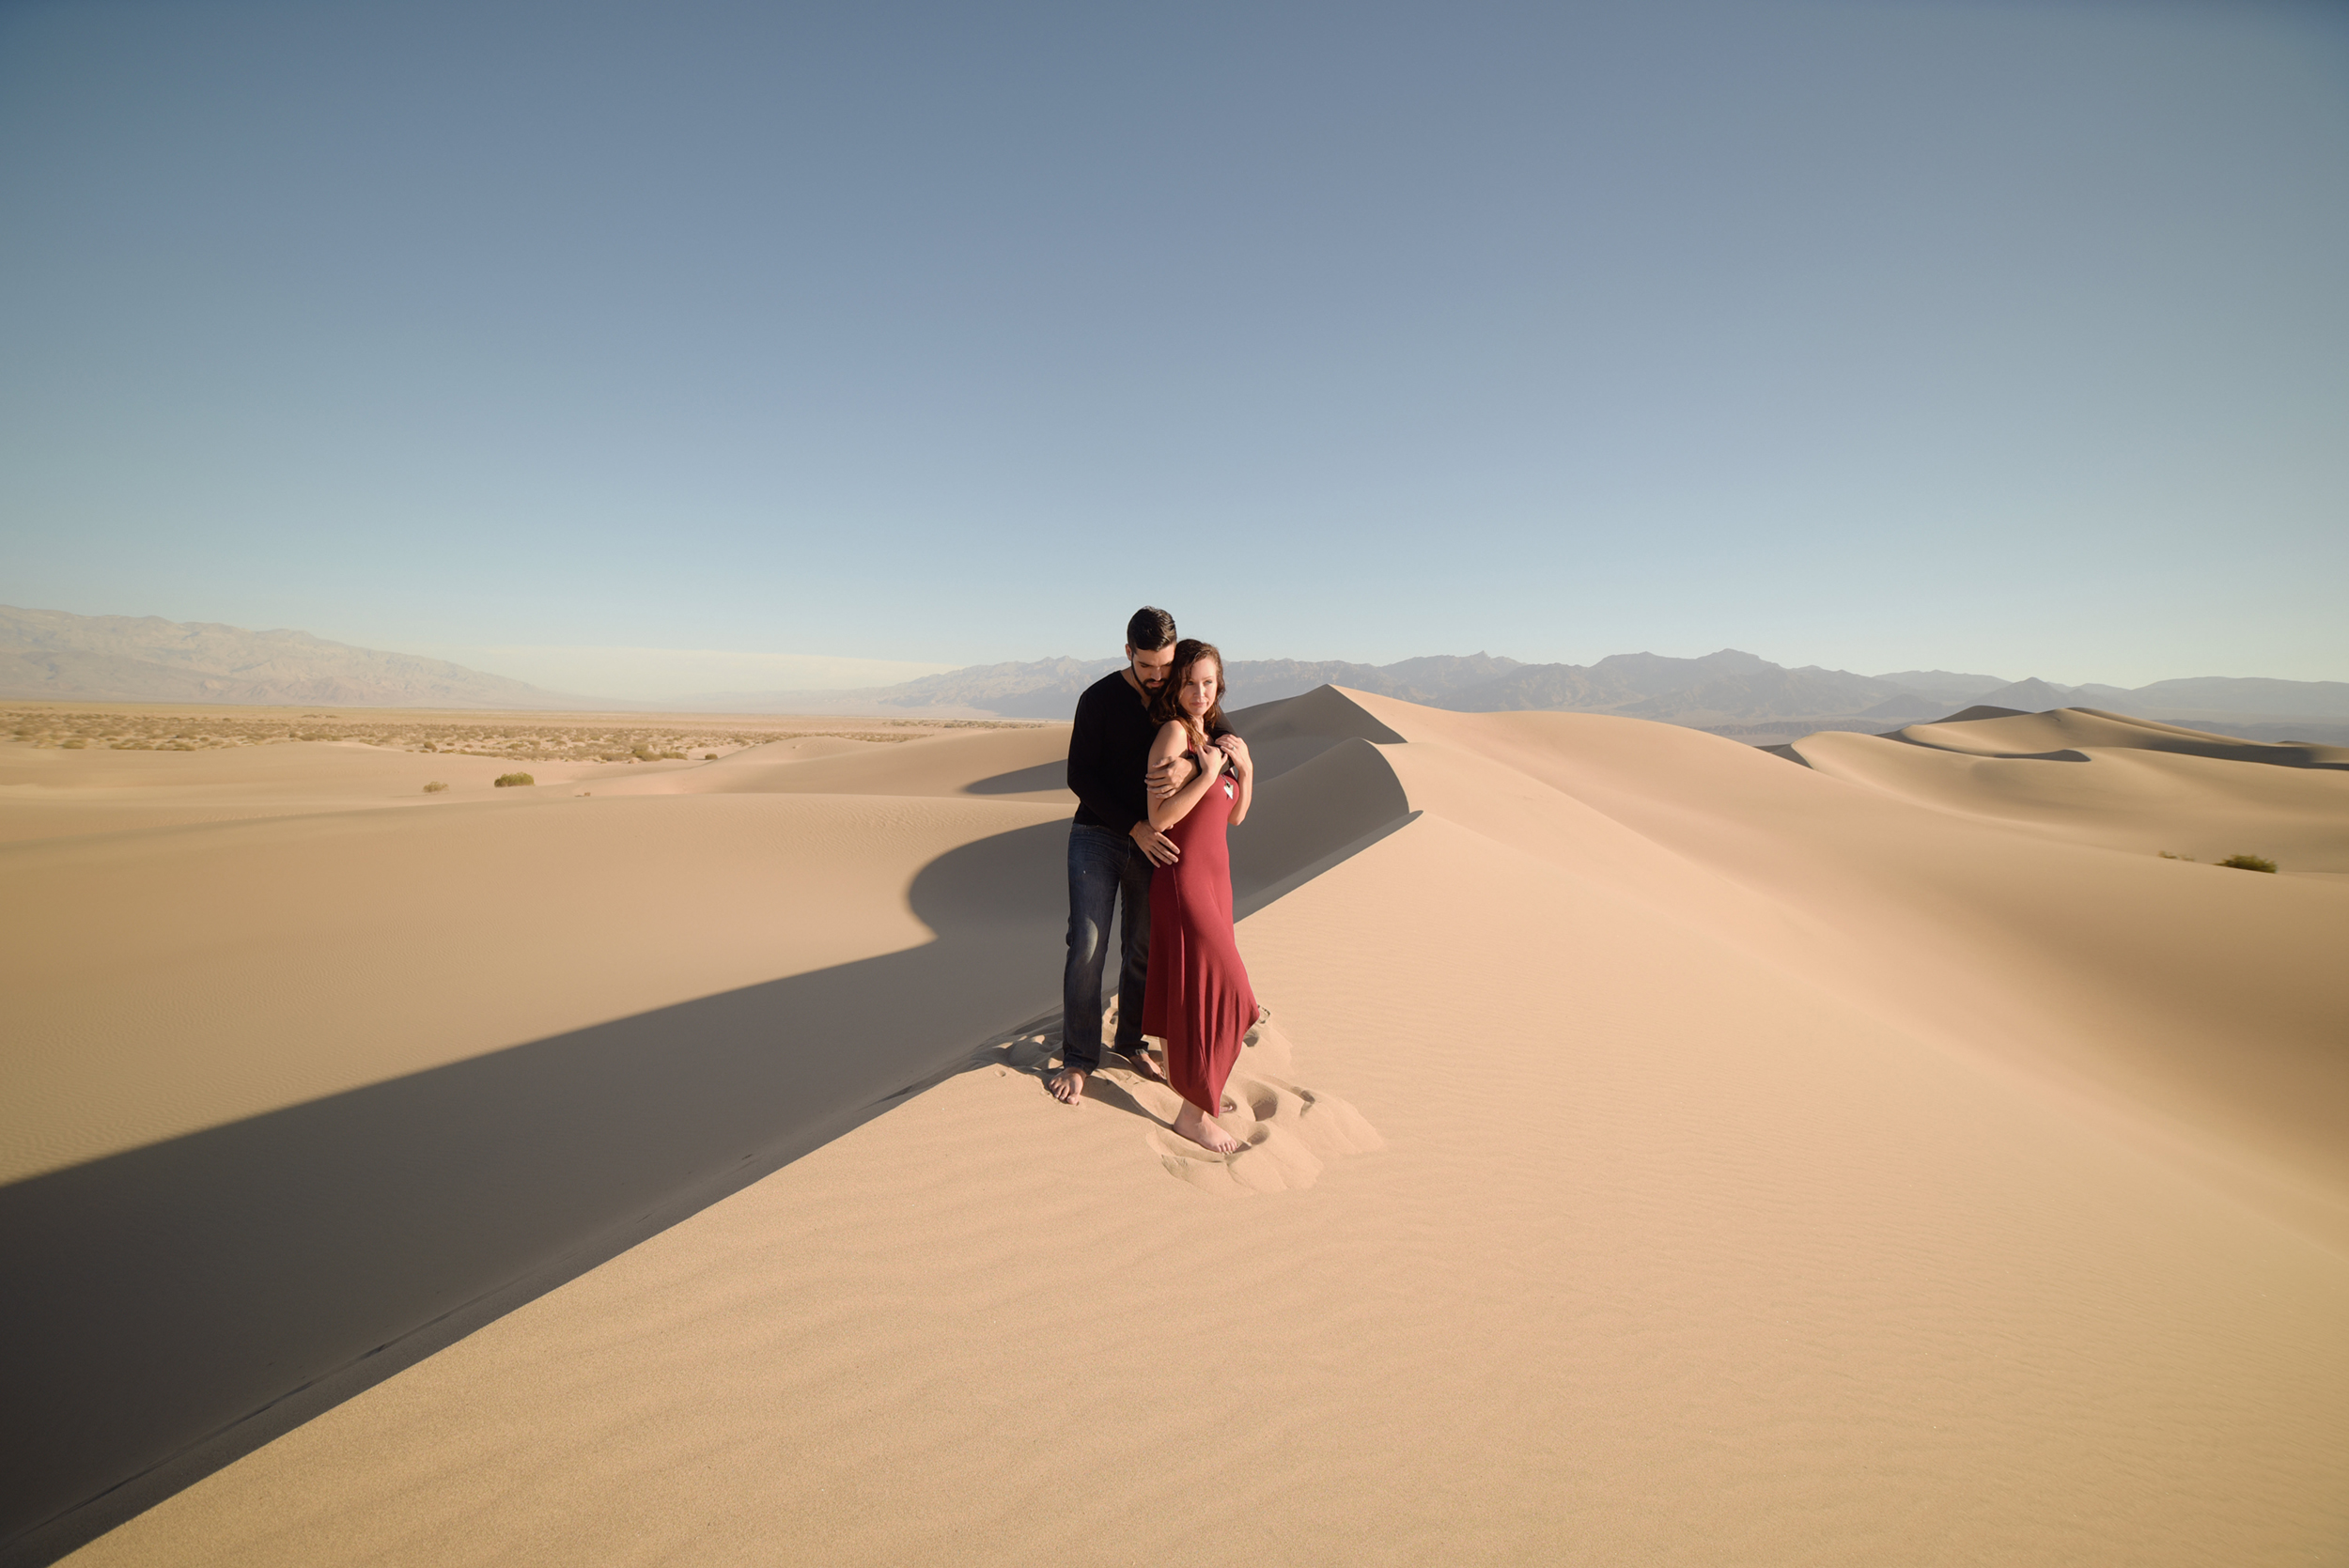 Death Valley California Desert Adventure Engagement Photographer7314.jpg